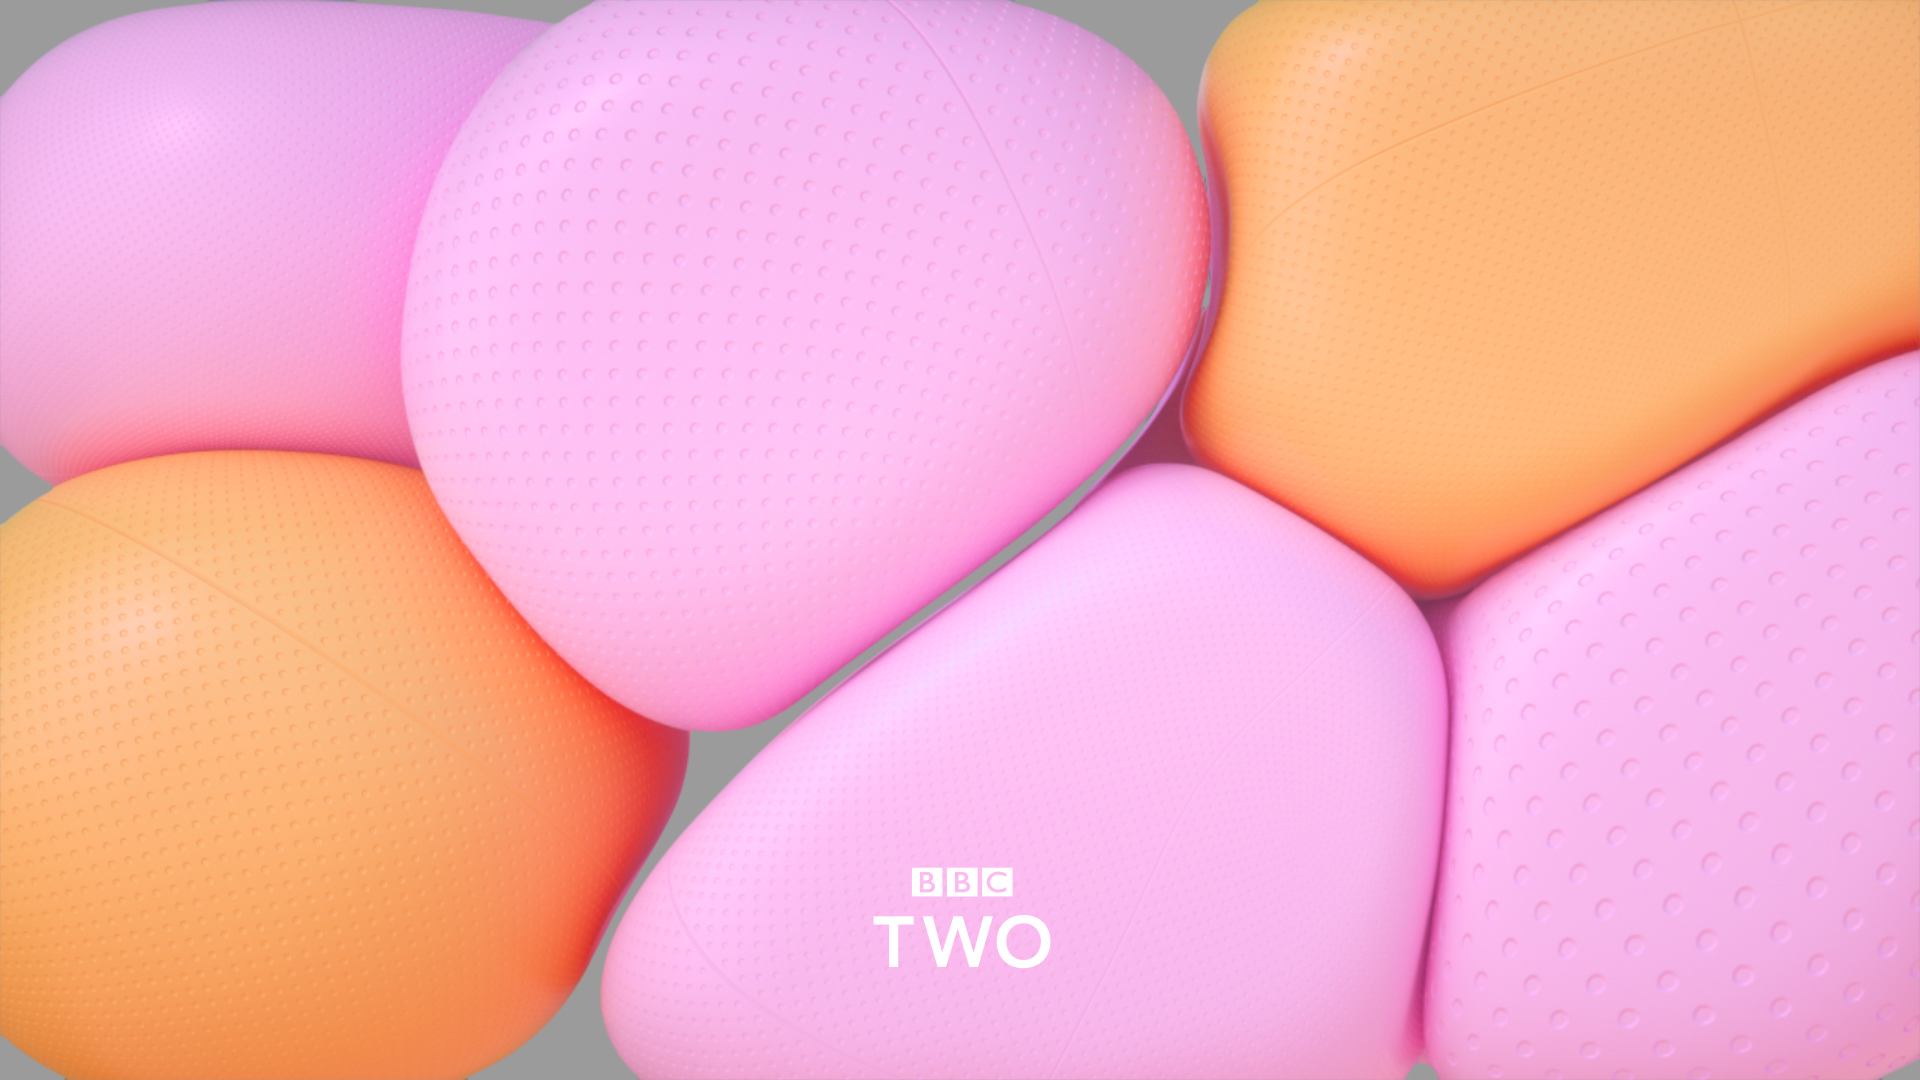 BBC_two_13